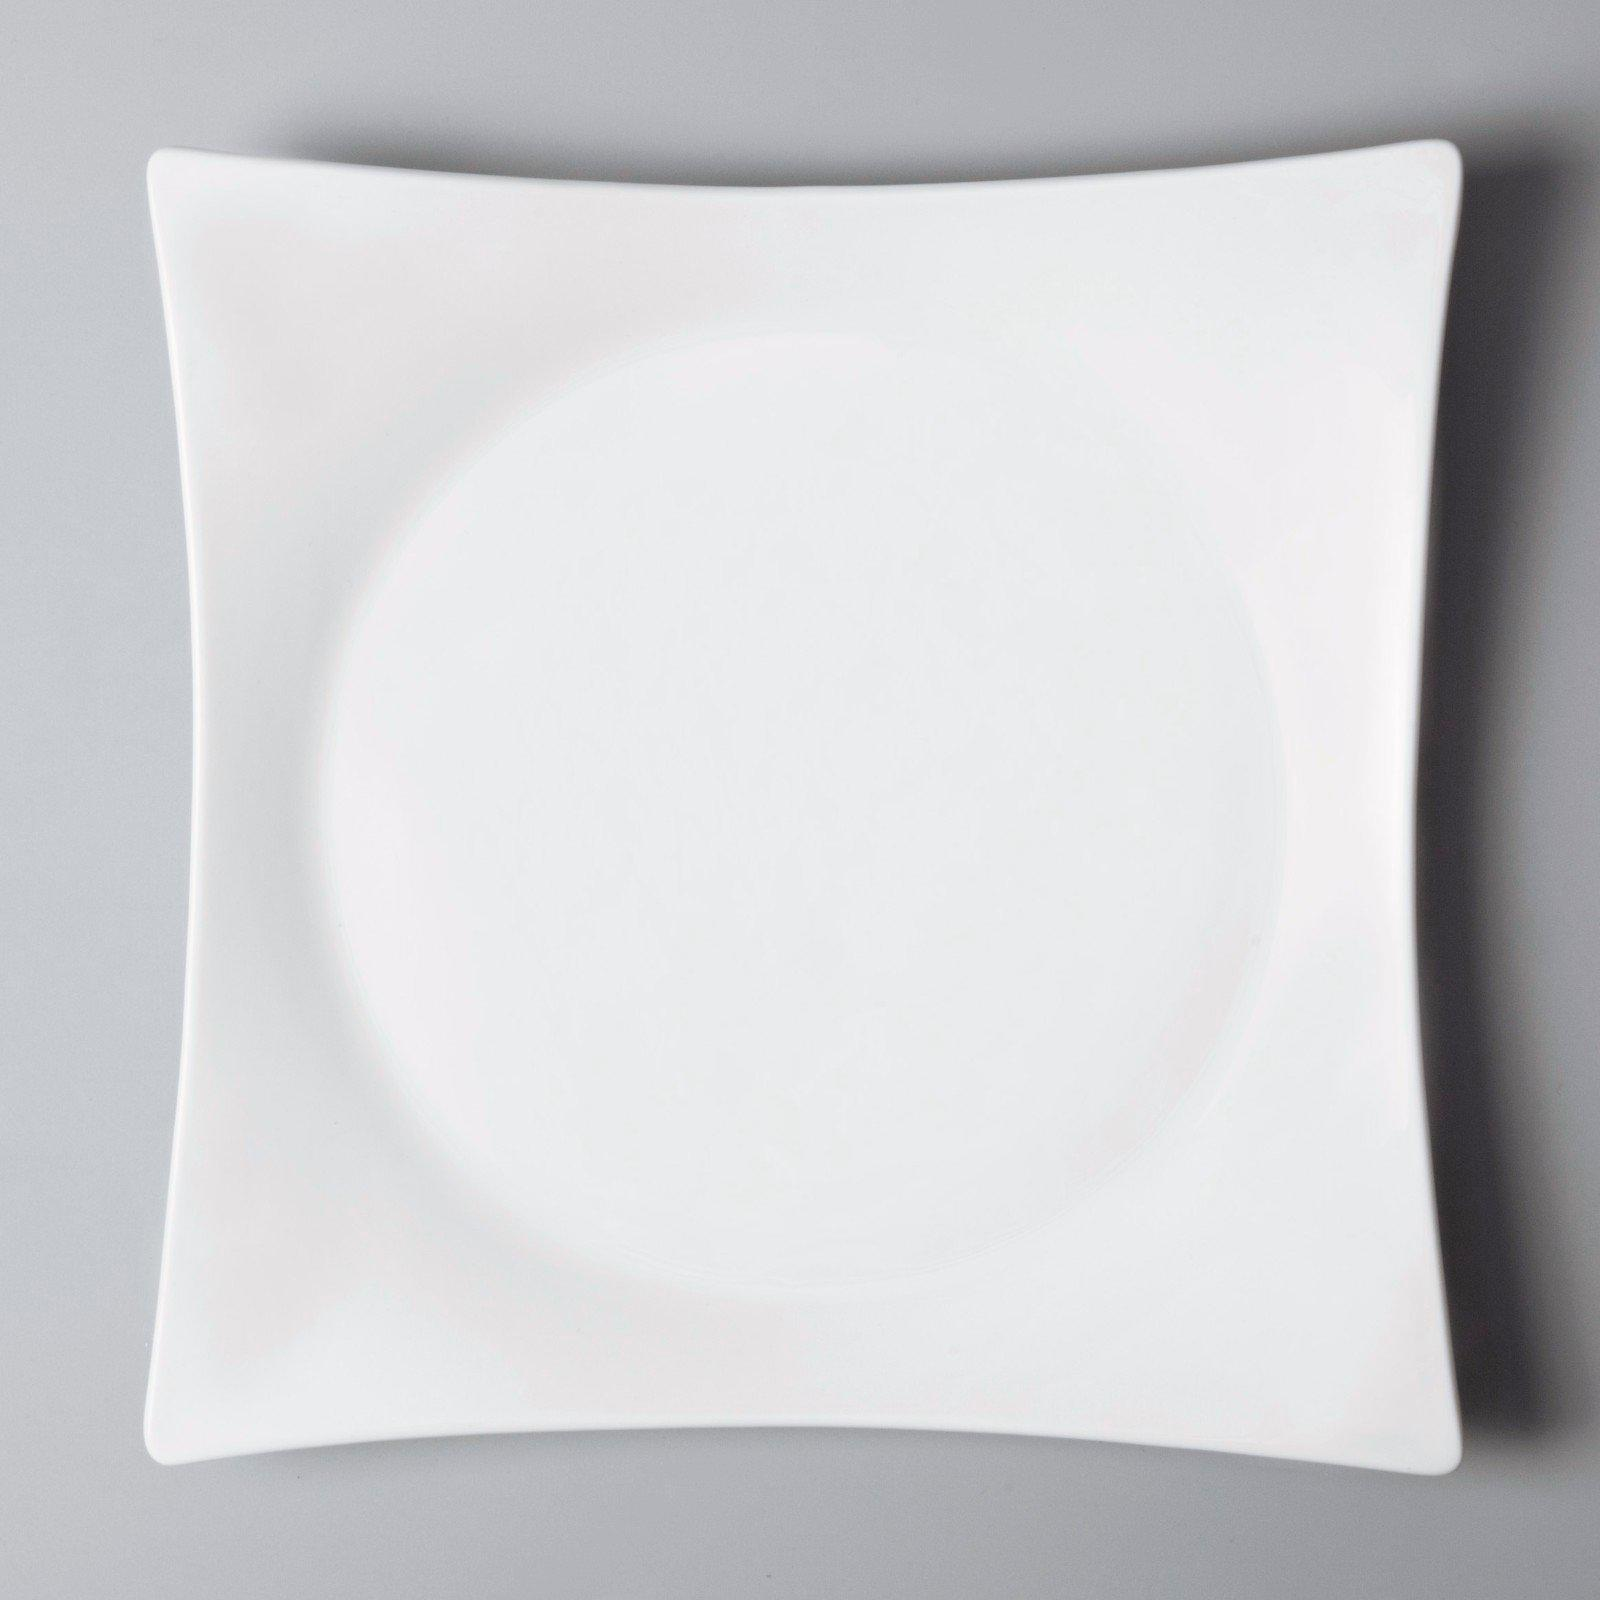 Wholesale rim glaze white dinner sets Two Eight Brand